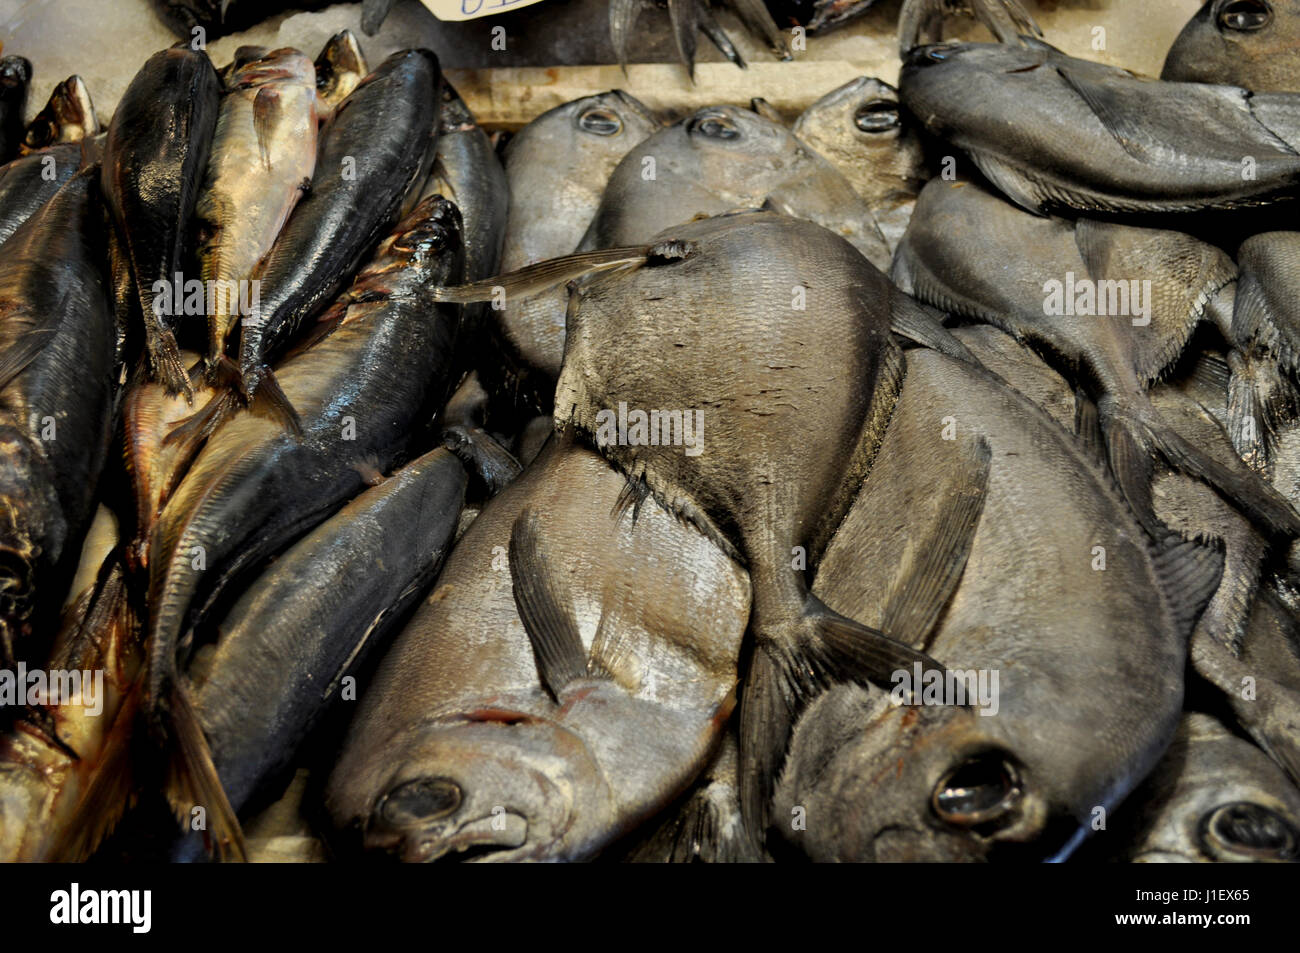 Reineta Fish at Fish Market - Stock Image